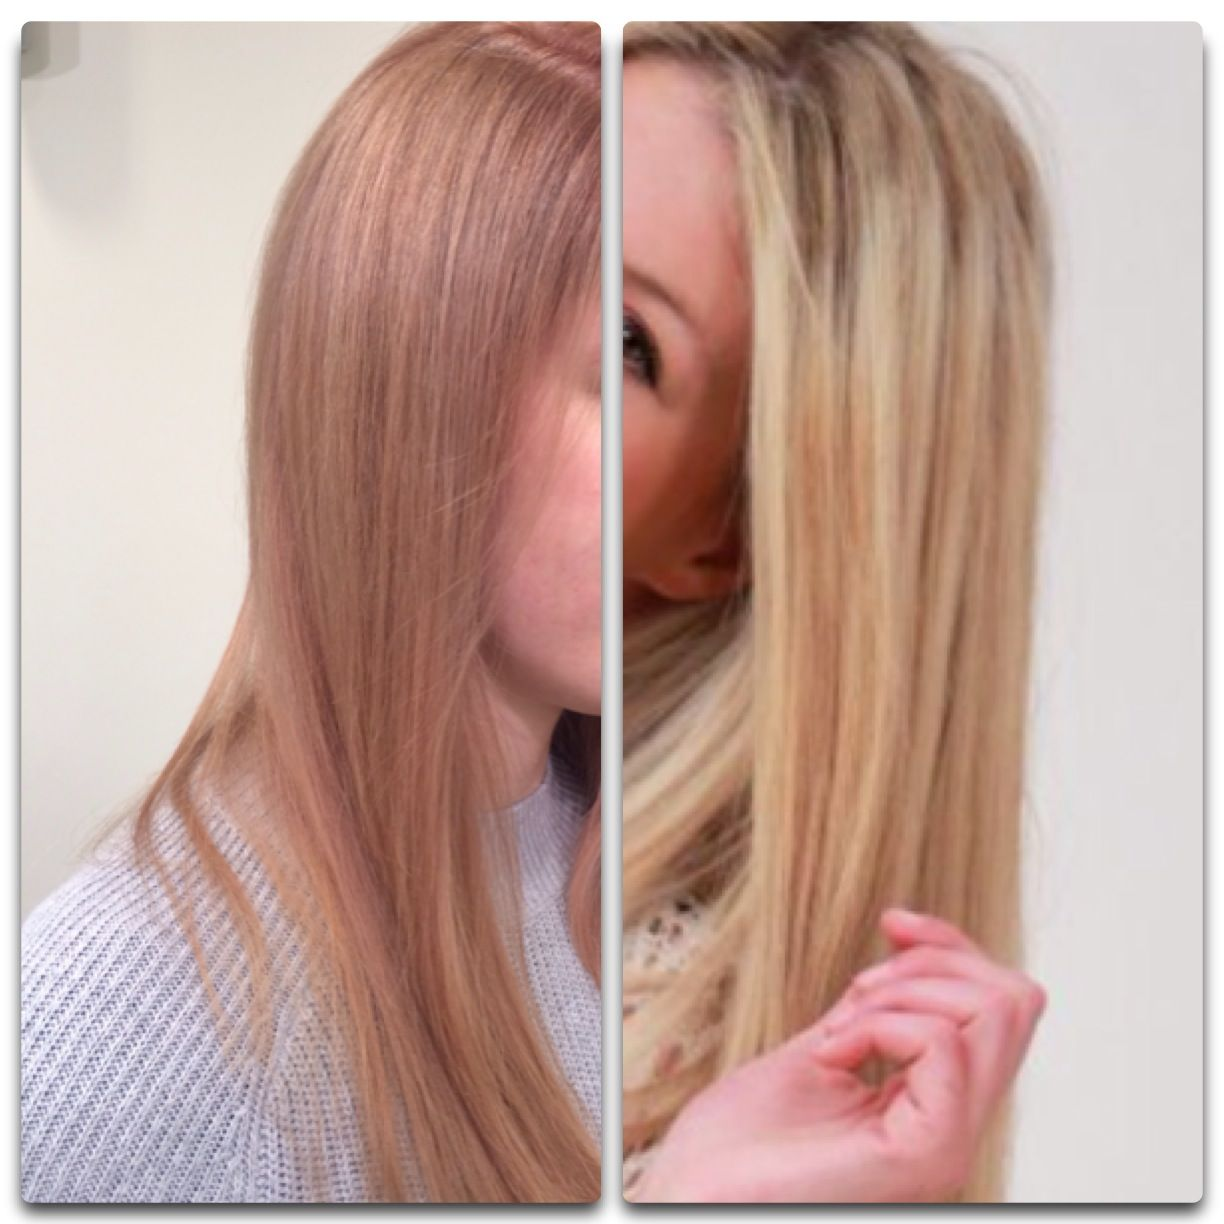 Möbel Jablonski Before And After Vorher Nachher Rosegold Beige Blond Color By